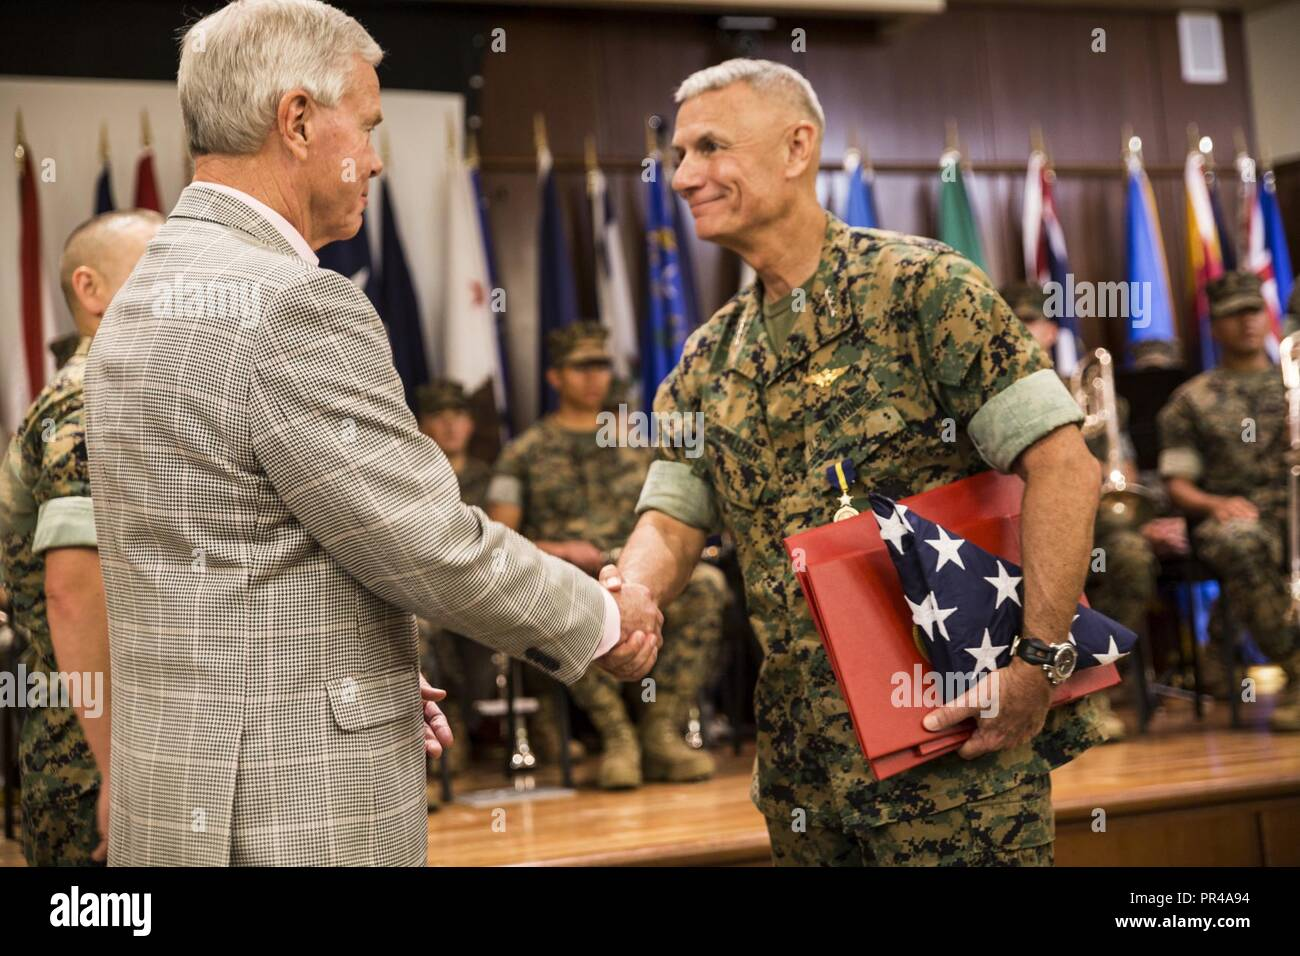 Retired Marine Gen. James F. Amos, 35th Commandant of the Marine Corps, shakes the hand of Lt. Gen. Rex C. McMillian, outgoing commander of Marine Forces Reserve and Marine Forces North, at Marine Corps Support Facility New Orleans, Sept. 8, 2018. Amos was the retiring officer for McMillian, who served almost 40 years in the Marine Corps. Stock Photo